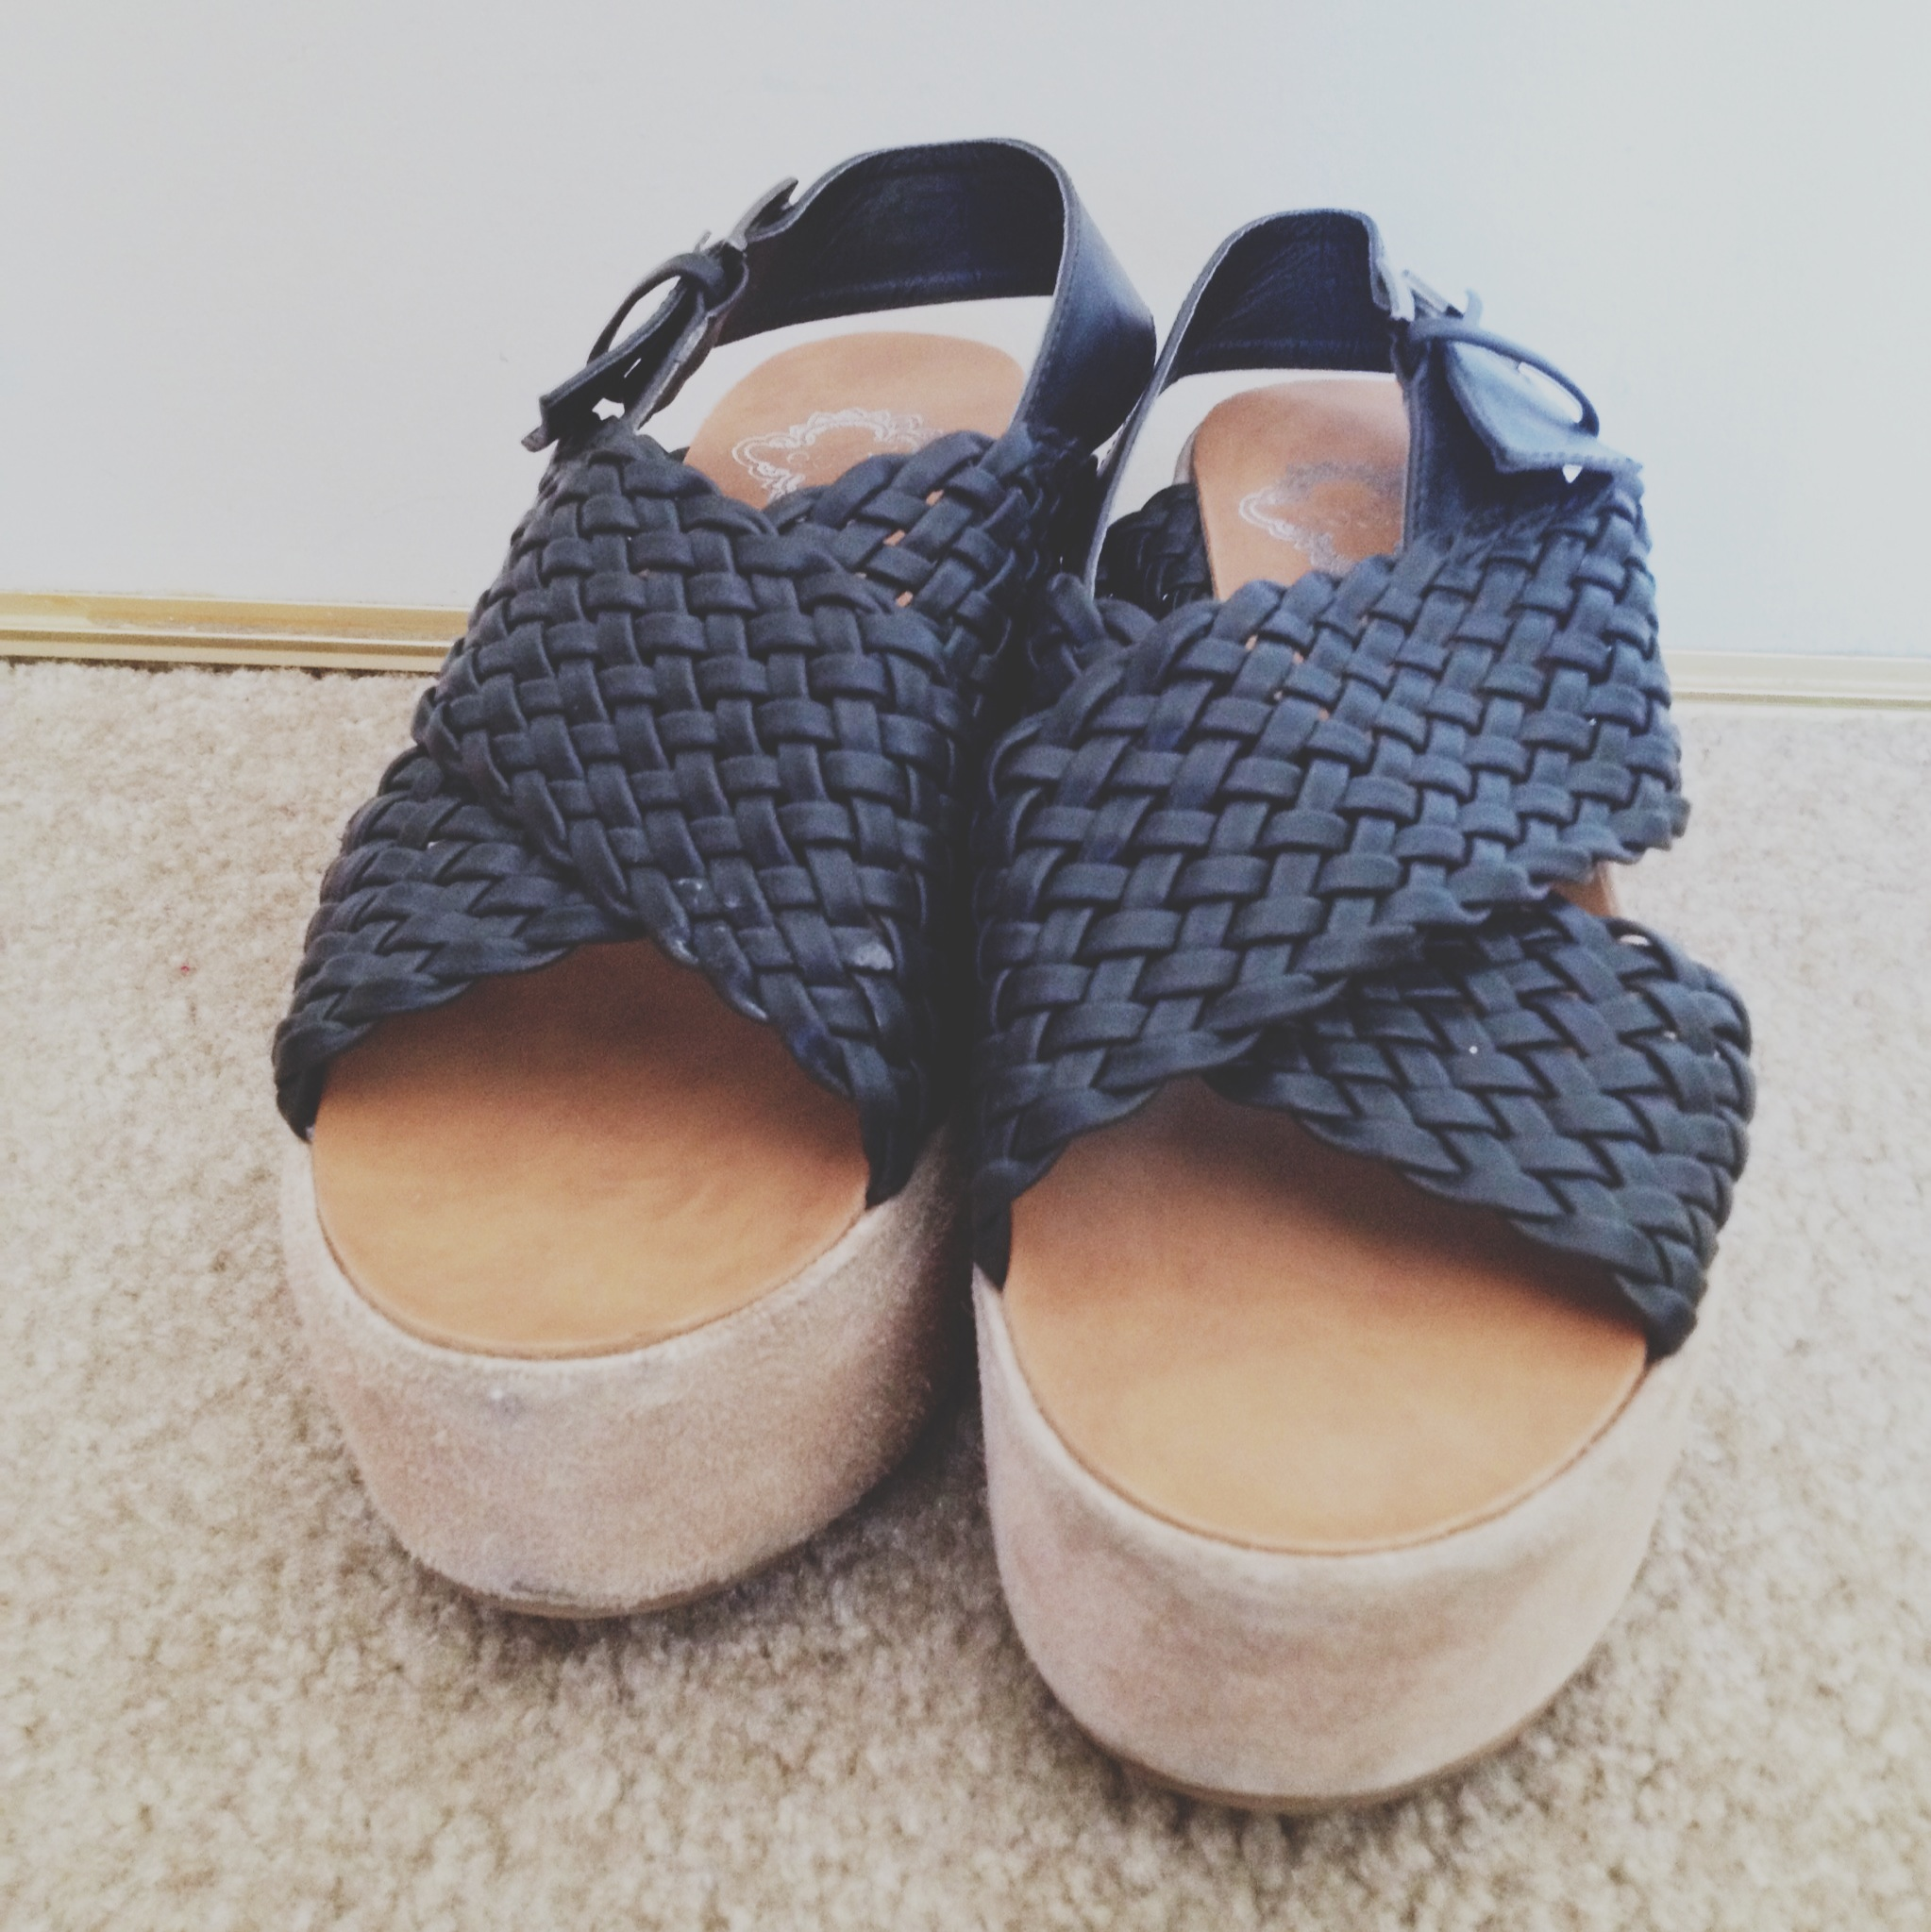 Urban Outfitters Black Woven Platform Sandals Size 7